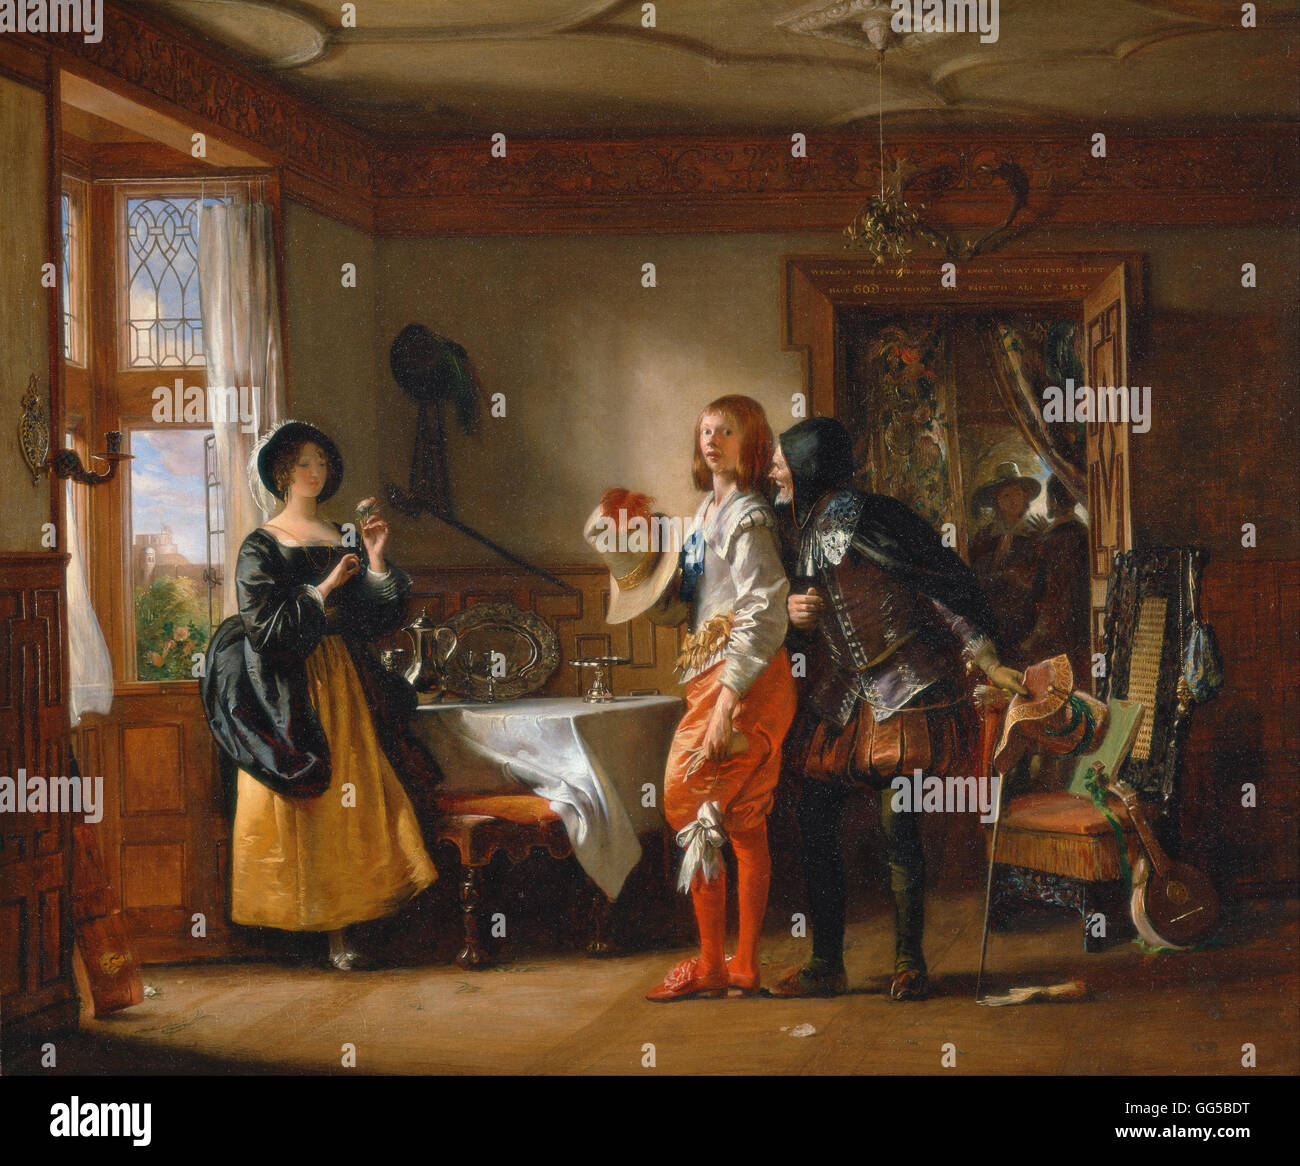 Charles Robert Leslie - Slender, with the Assistance of Shallow, Courting Anne Page, from The Merry Wives of Winds - Stock Image